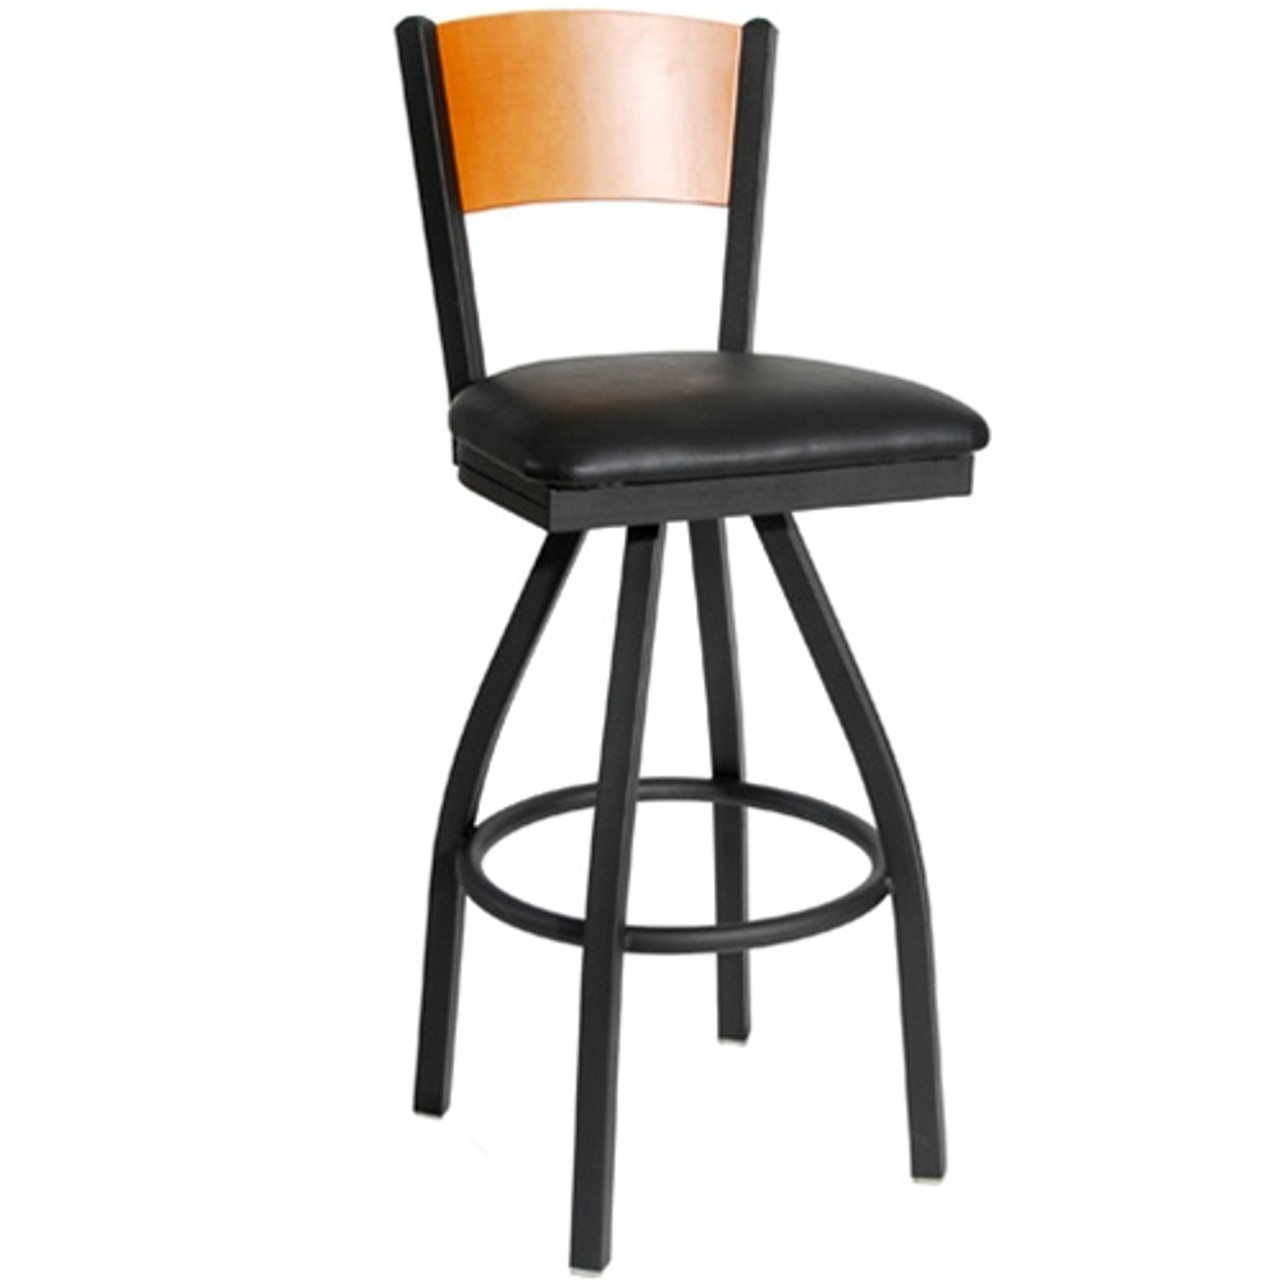 Admirable Bfm Seating Dale Solid Wood Back Metal Restaurant Swivel Bar Stool With Vinyl Seat 2150S Sbv Squirreltailoven Fun Painted Chair Ideas Images Squirreltailovenorg